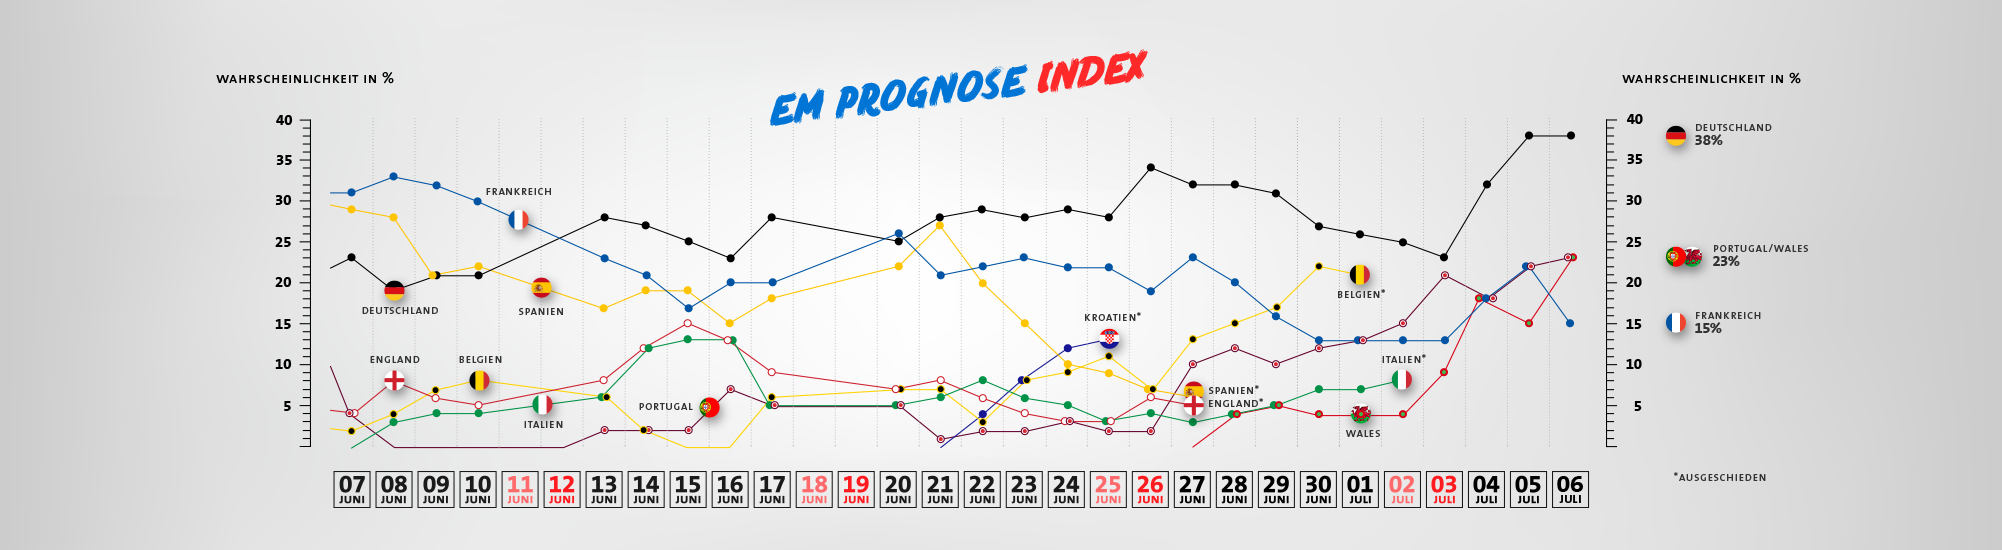 Prognose Index zur Euro 2016